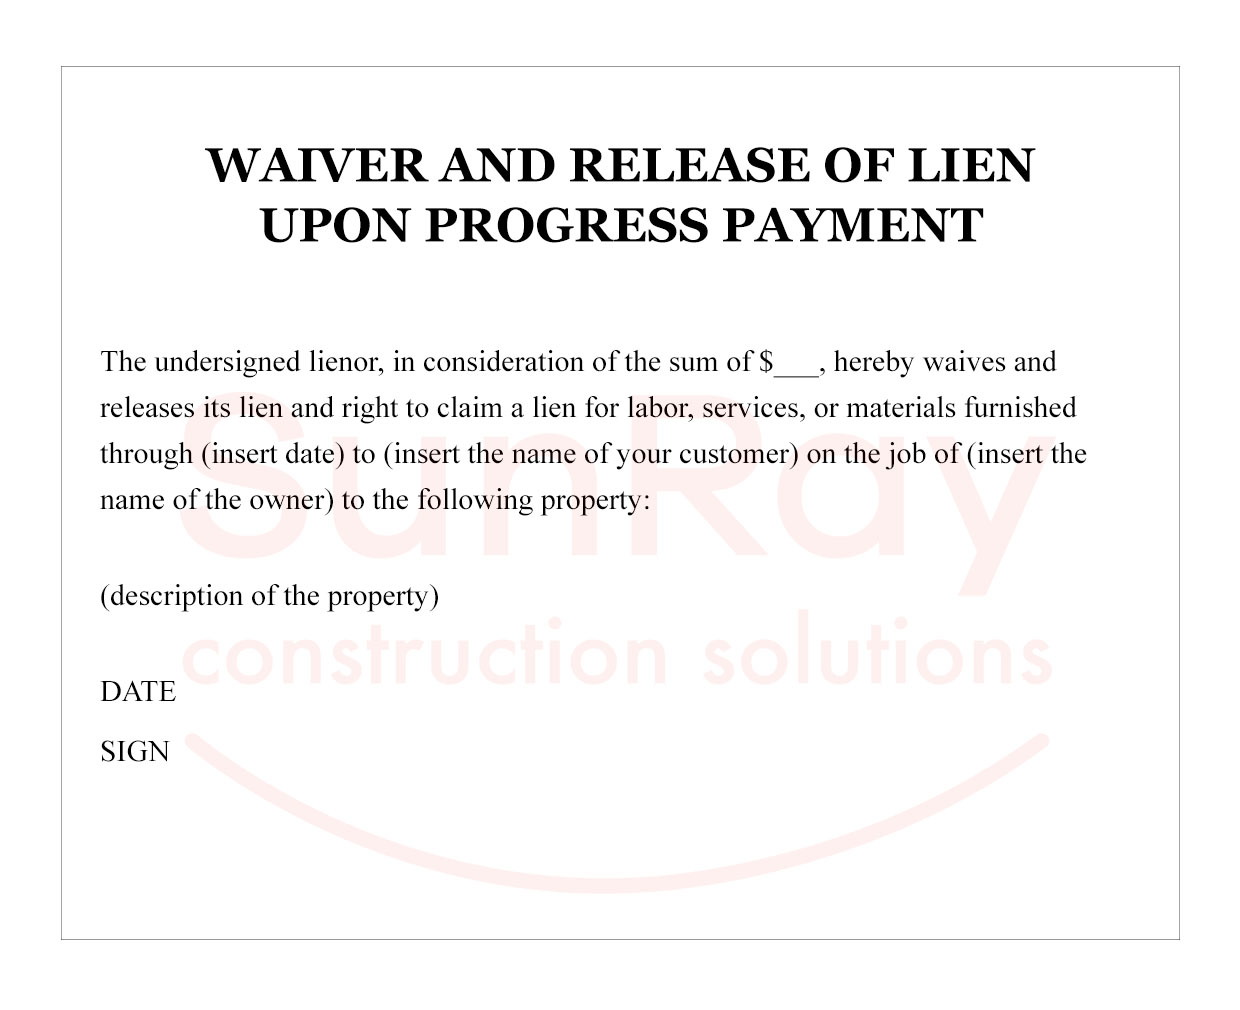 Waiver and Release of Lien upon final payment